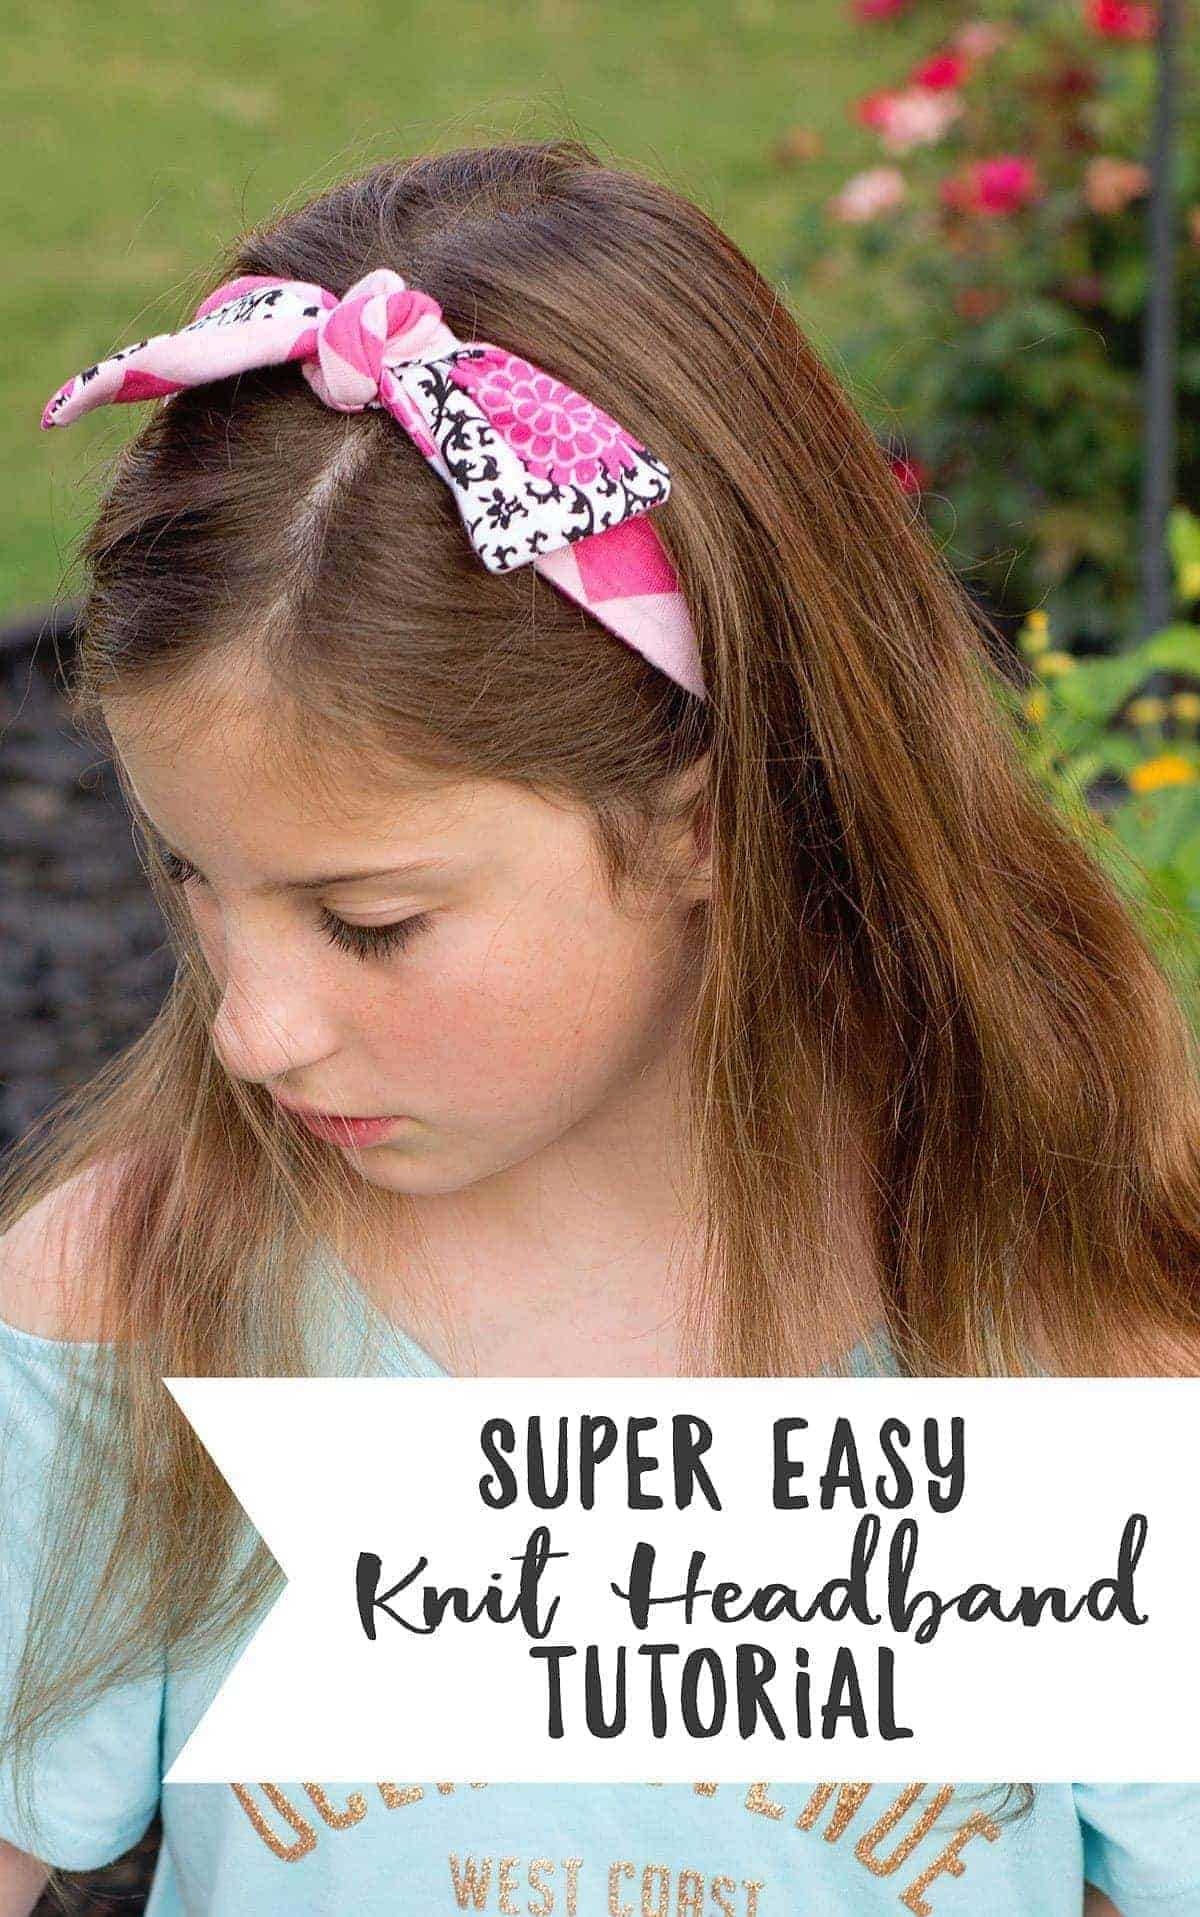 Want to learn how to sew a headband? This super simple DIY Headband Tutorial is about the easiest headband to you can make!